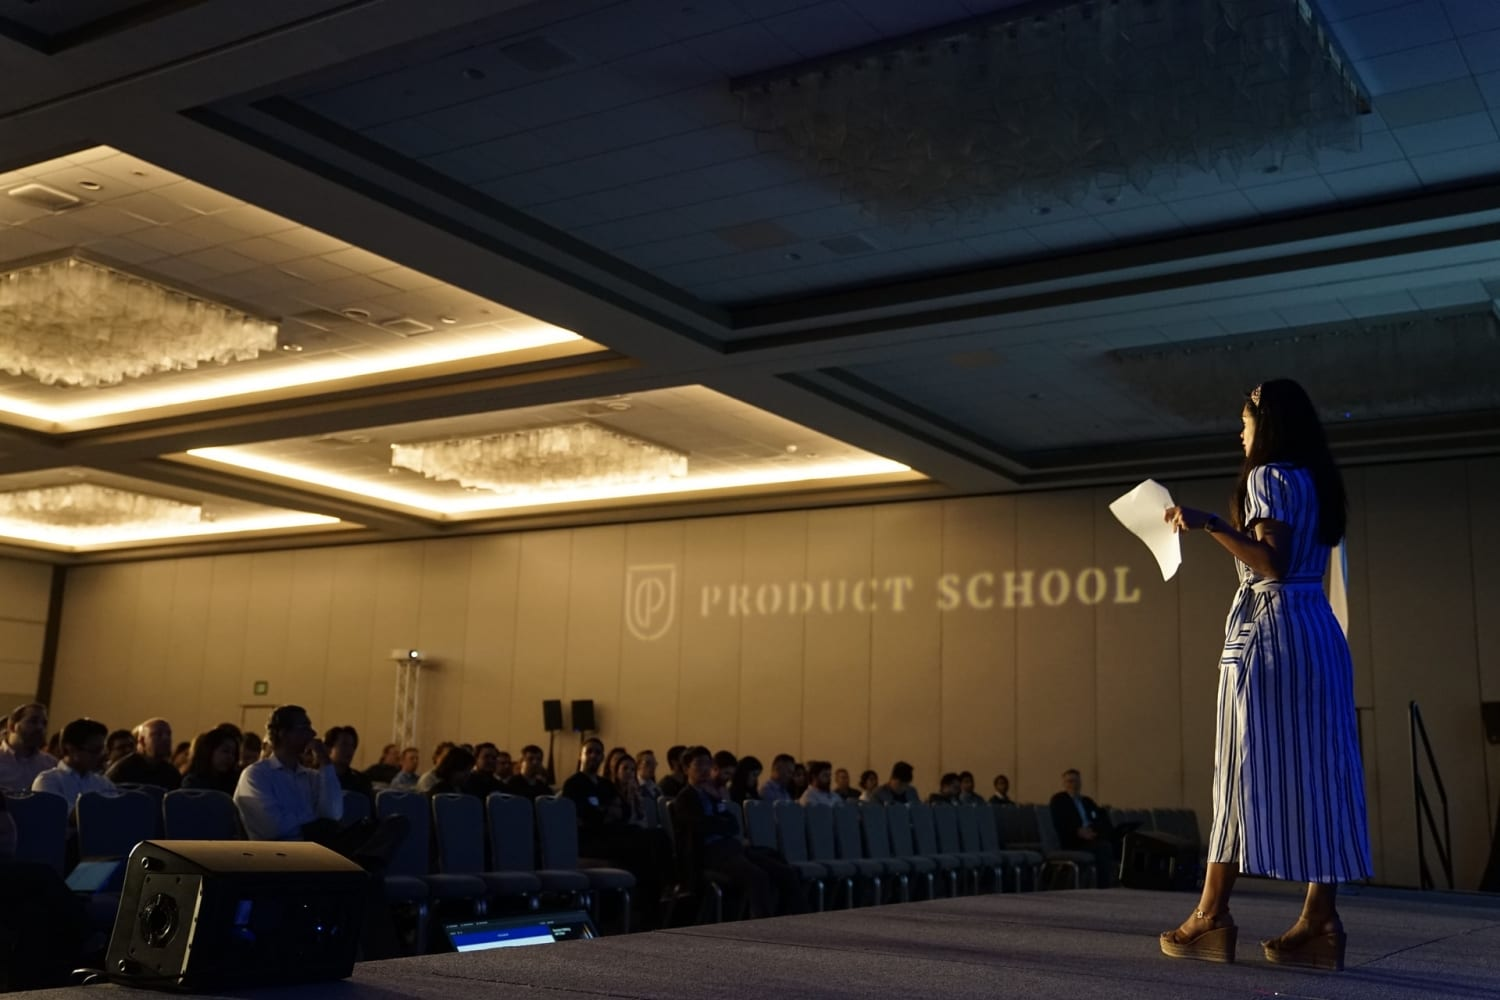 woman speaking on stage at a conference